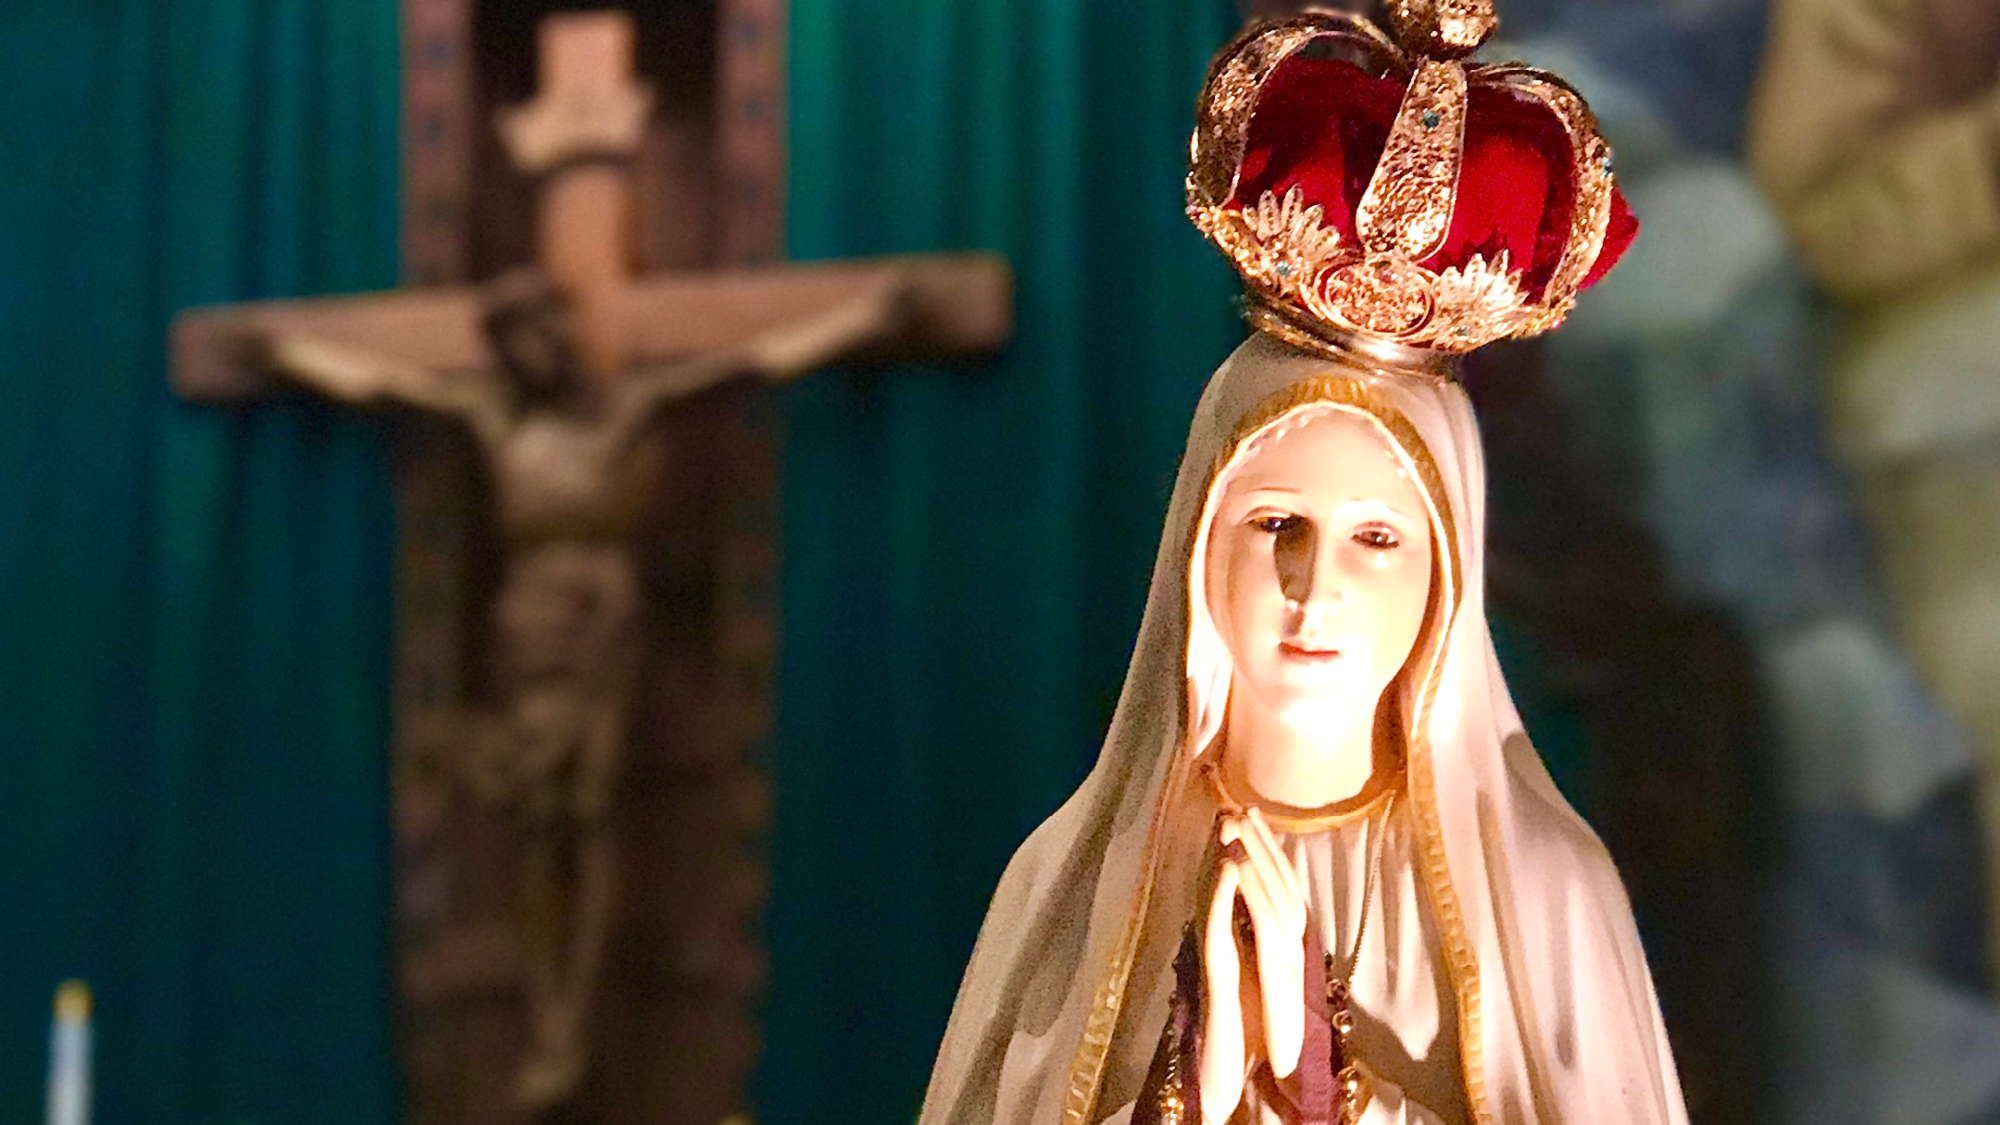 Do Not be Afraid Says Our Lady of Fatima